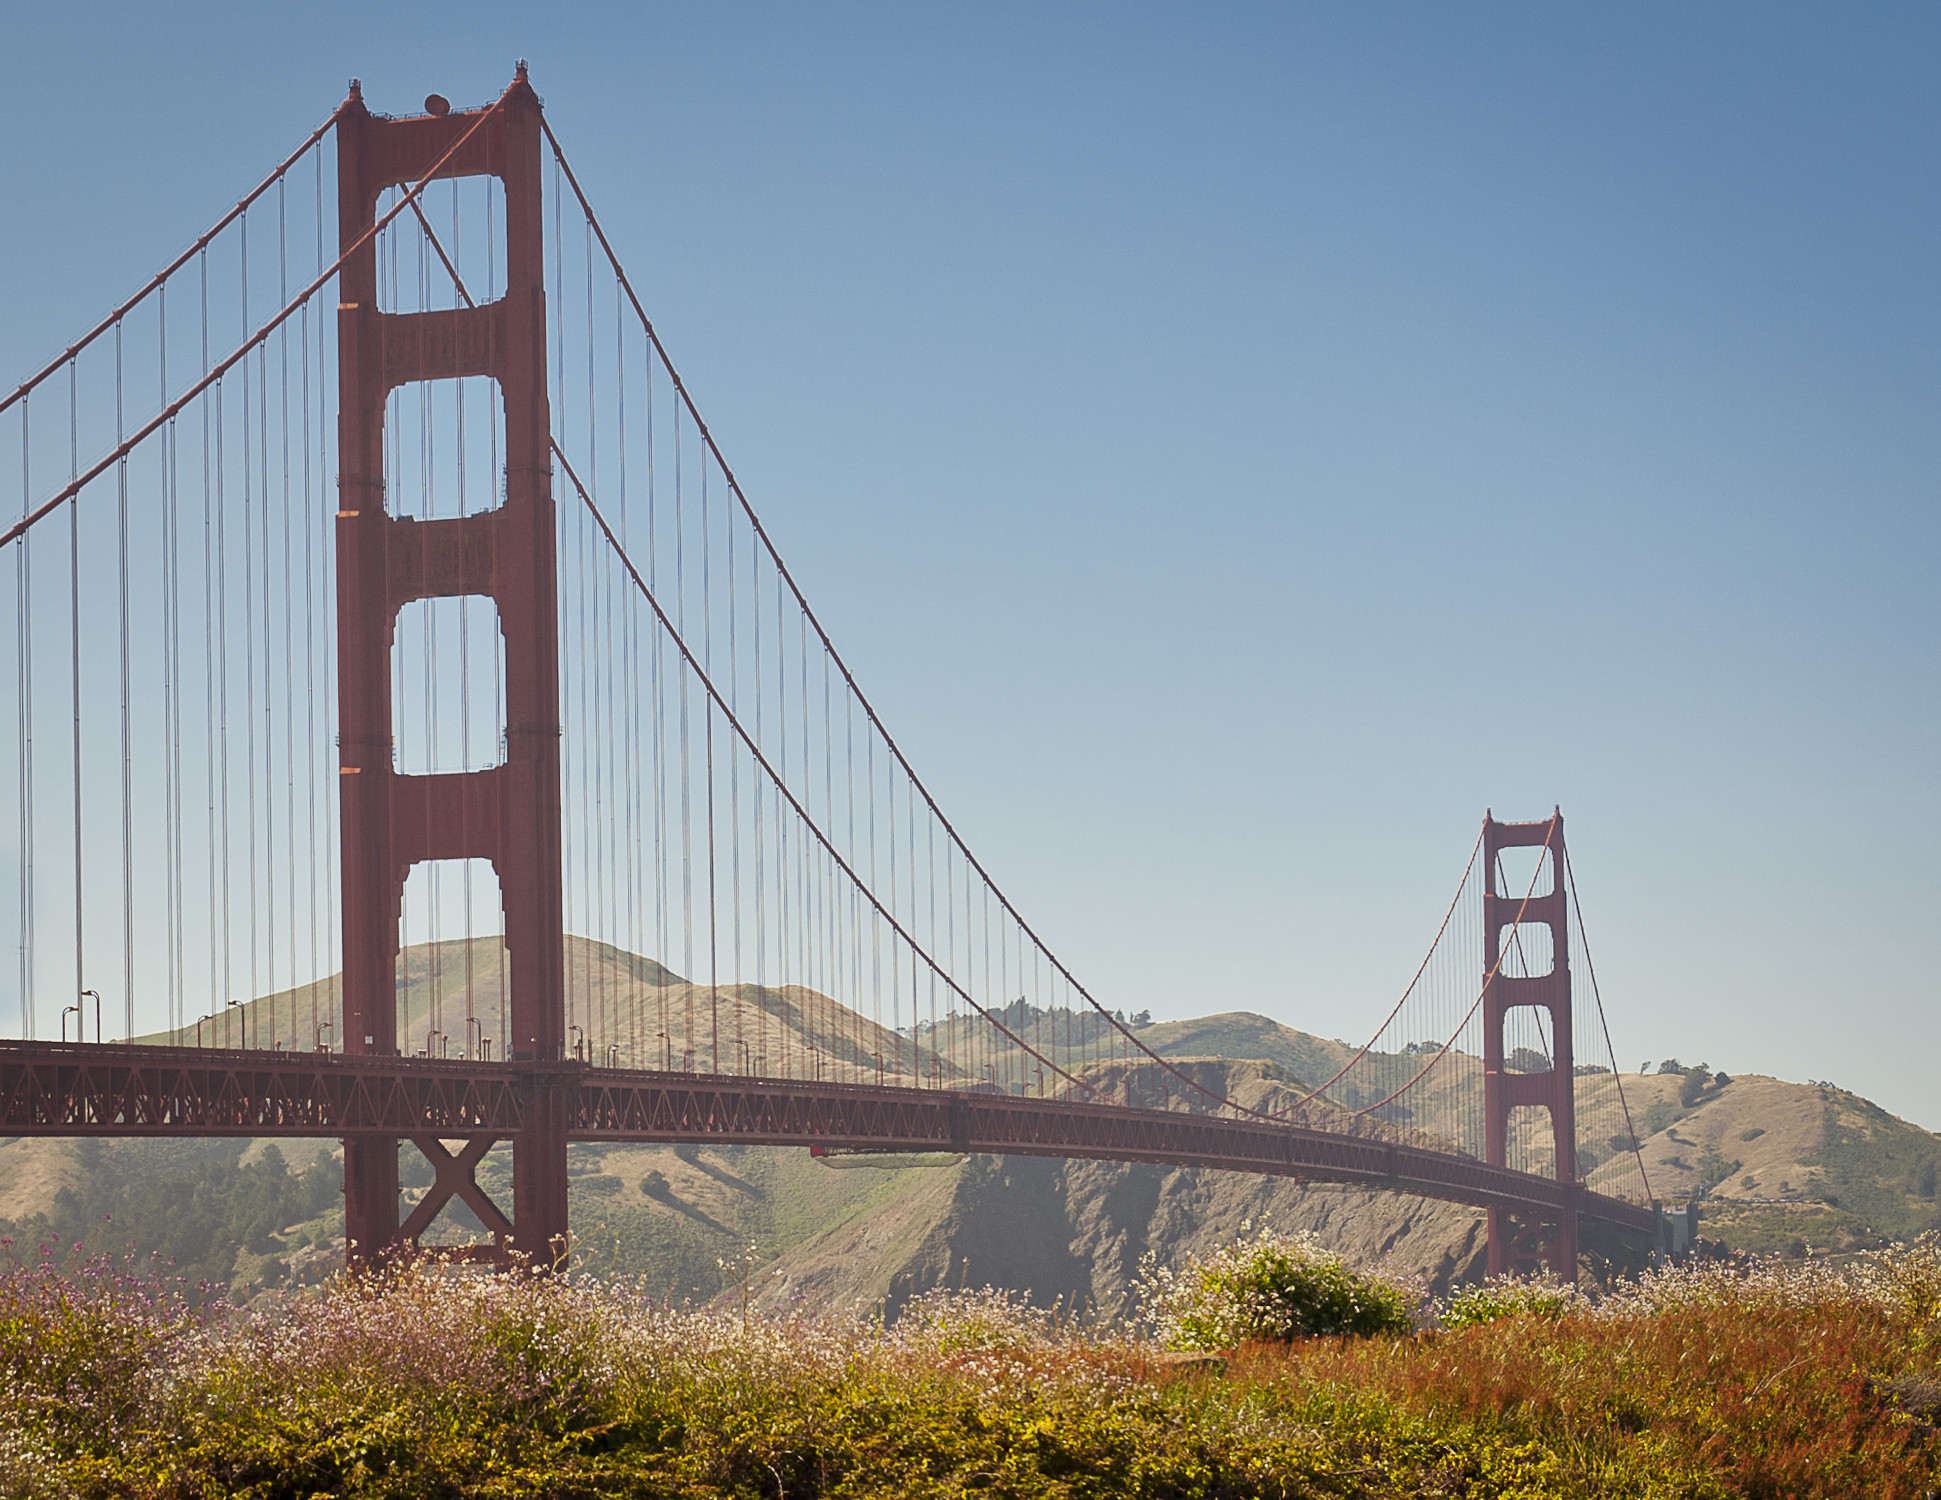 Best ideas about San Francisco Landscape . Save or Pin a new perspective photos of the golden gate bridge san Now.